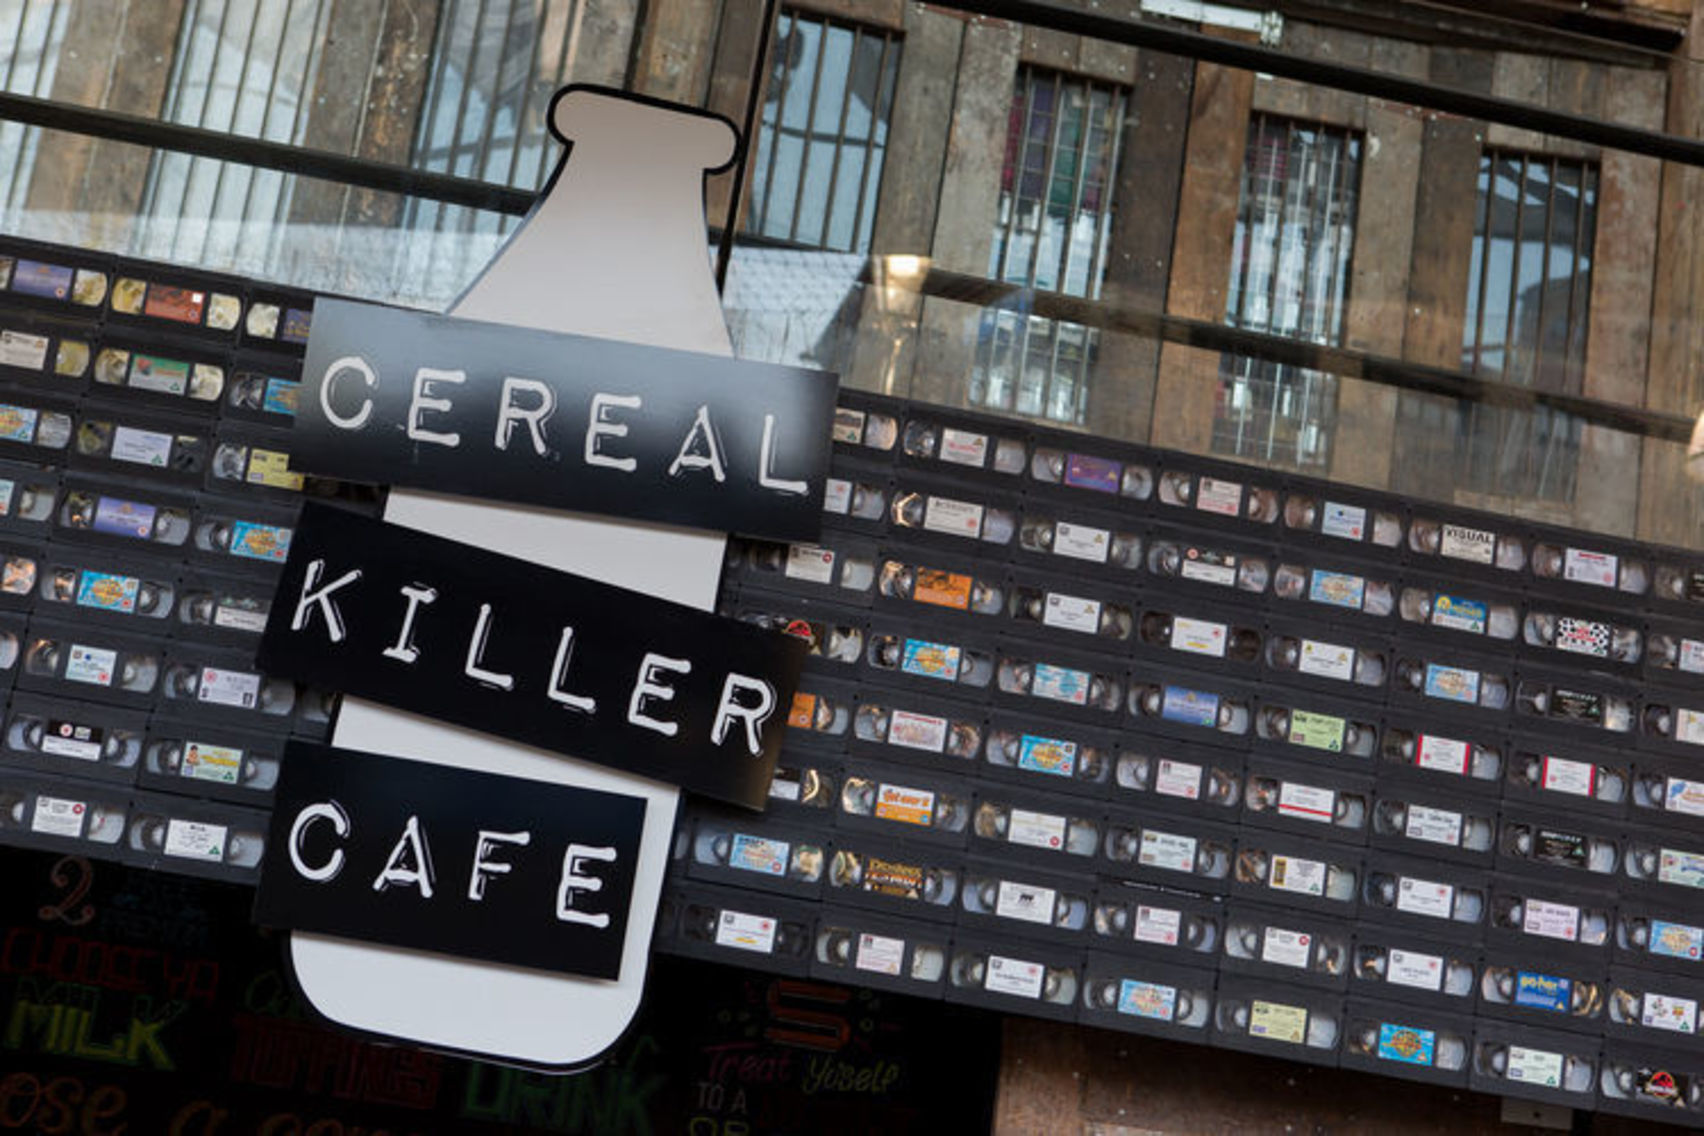 Camden Branch, Cereal Killer Cafe